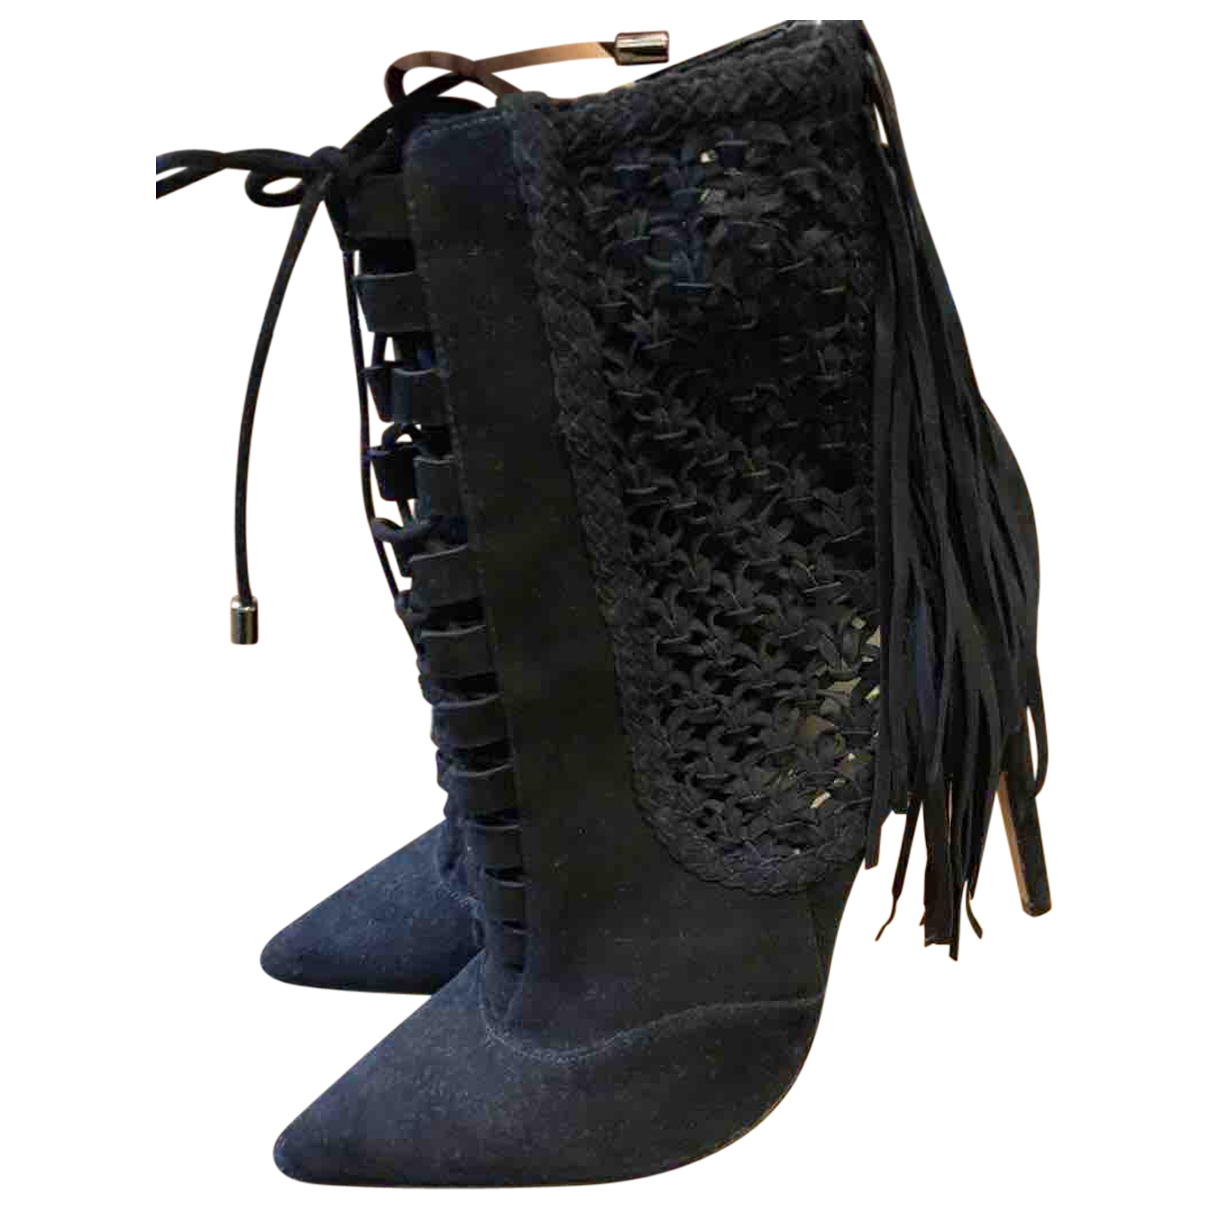 Alexandre Birman N Black Suede Boots for Women 38.5 EU